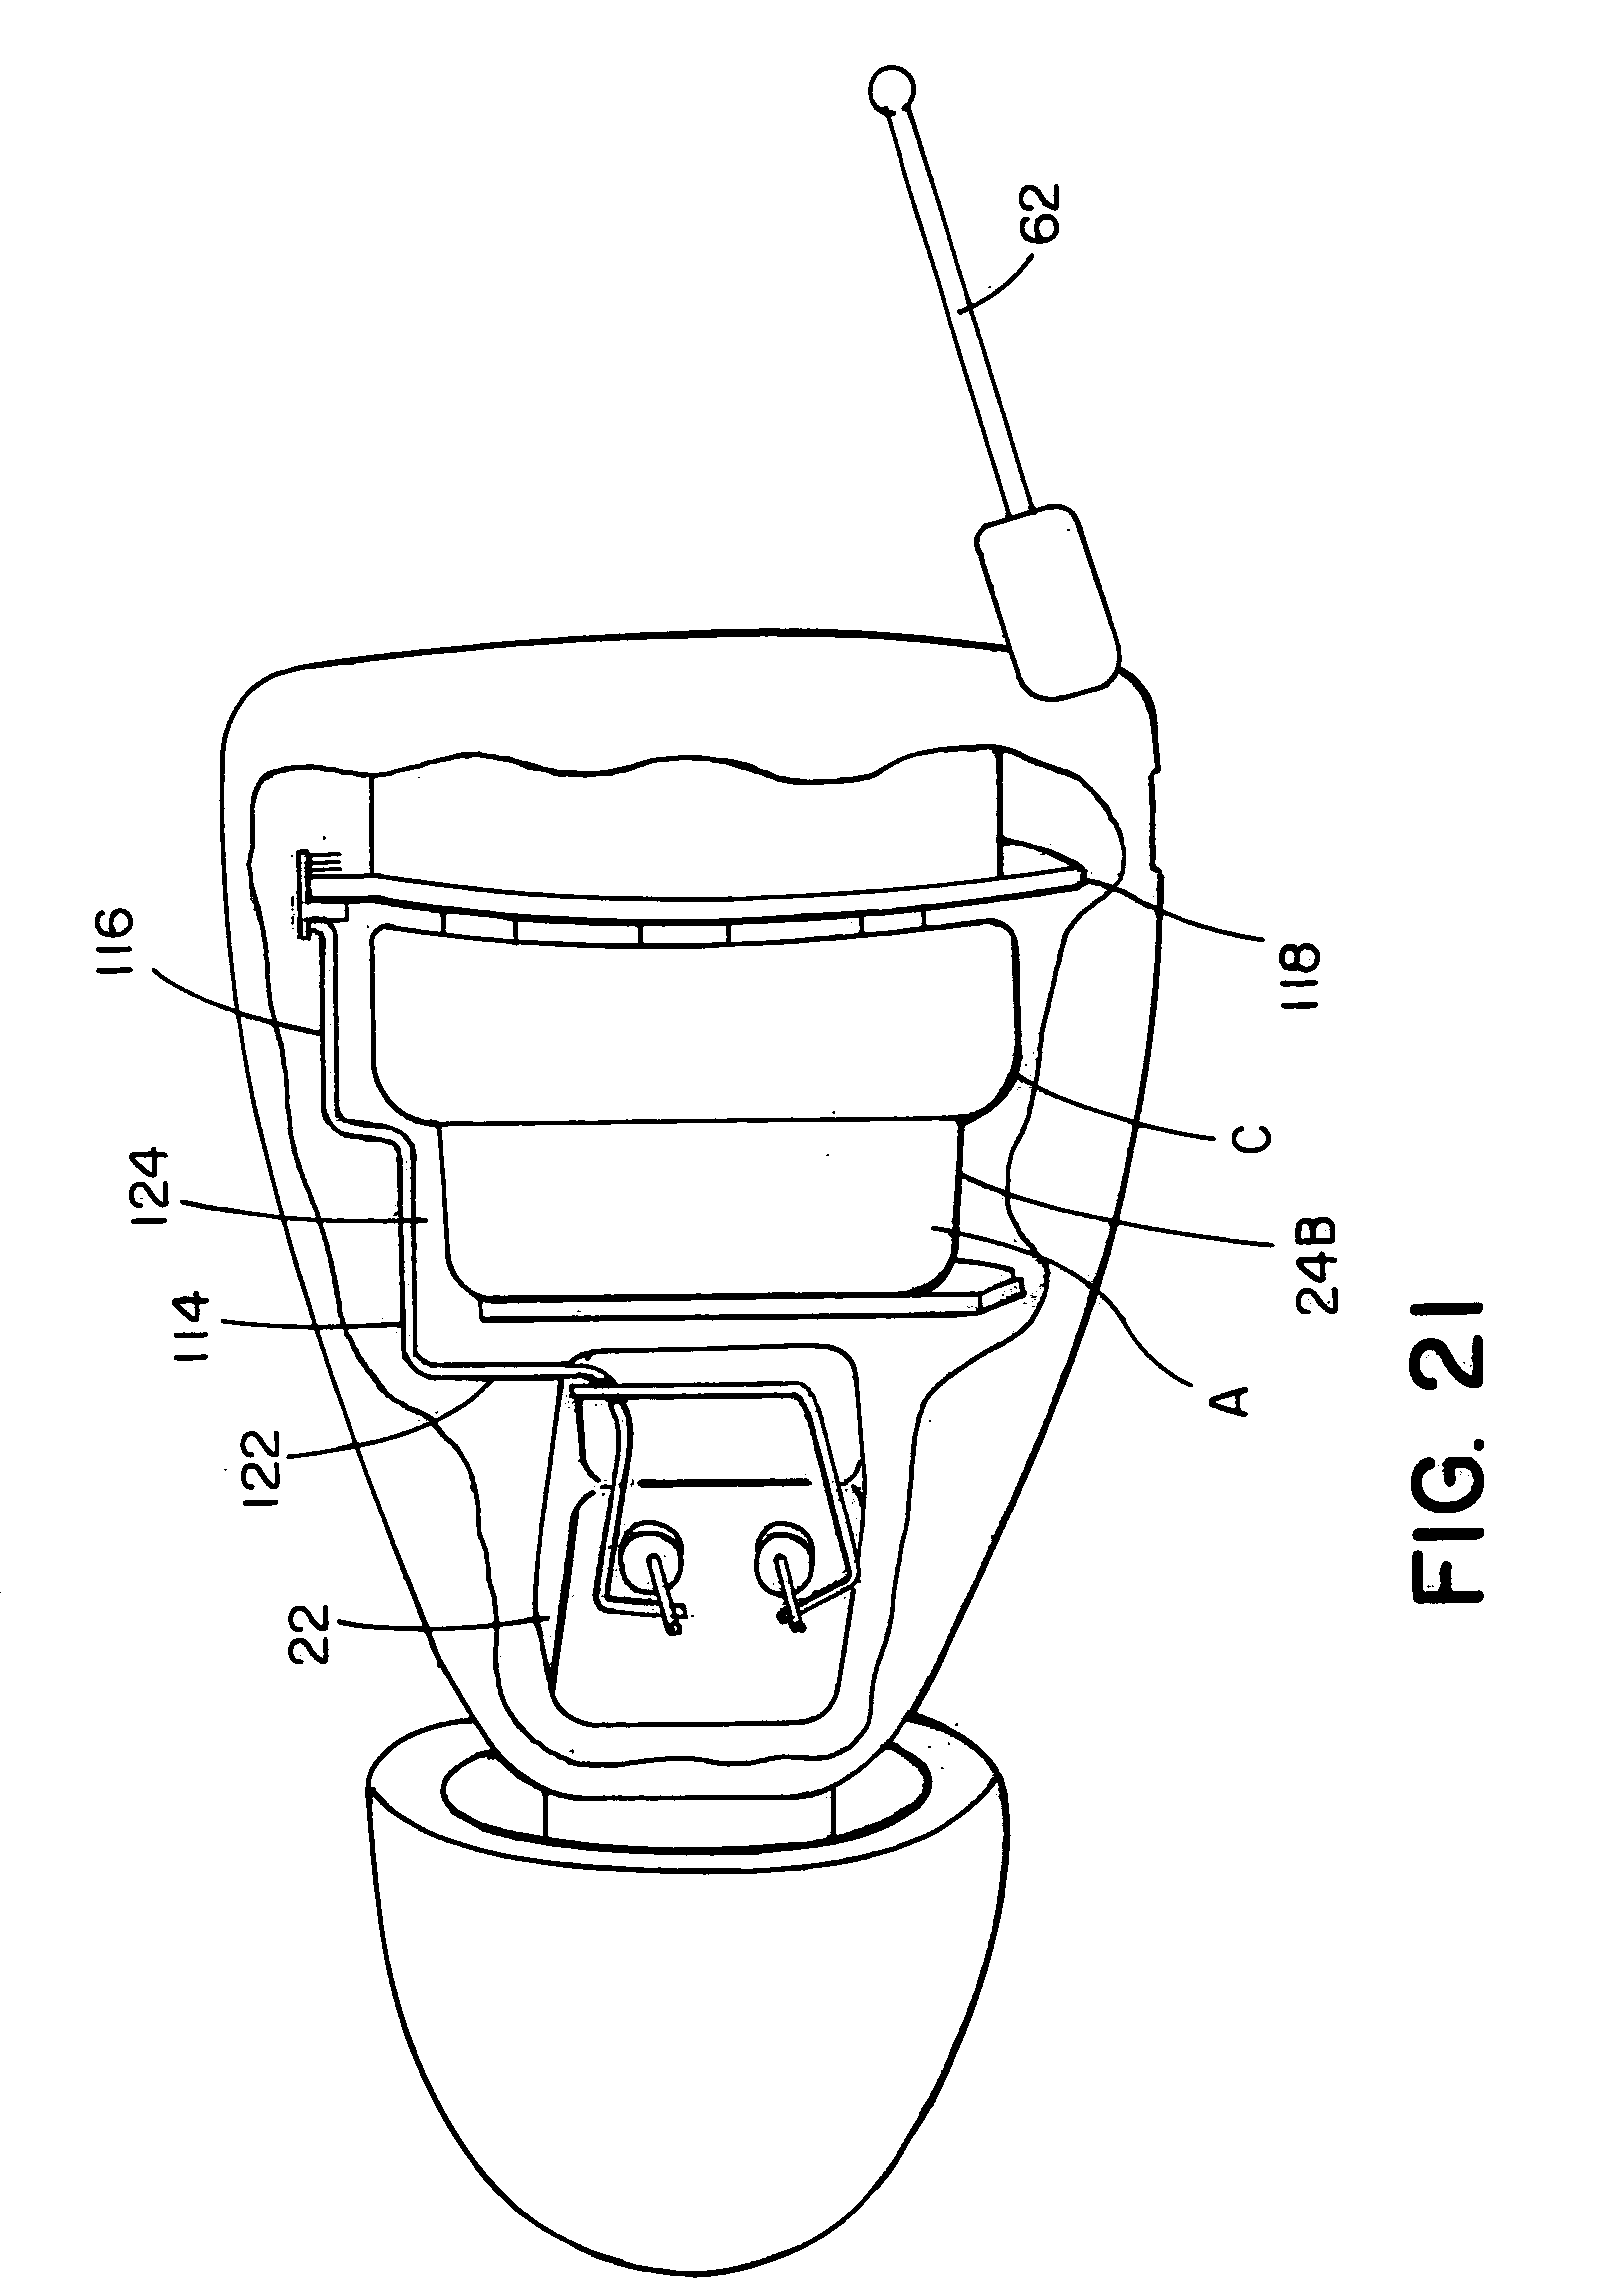 patent us20040240695 - hearing aid